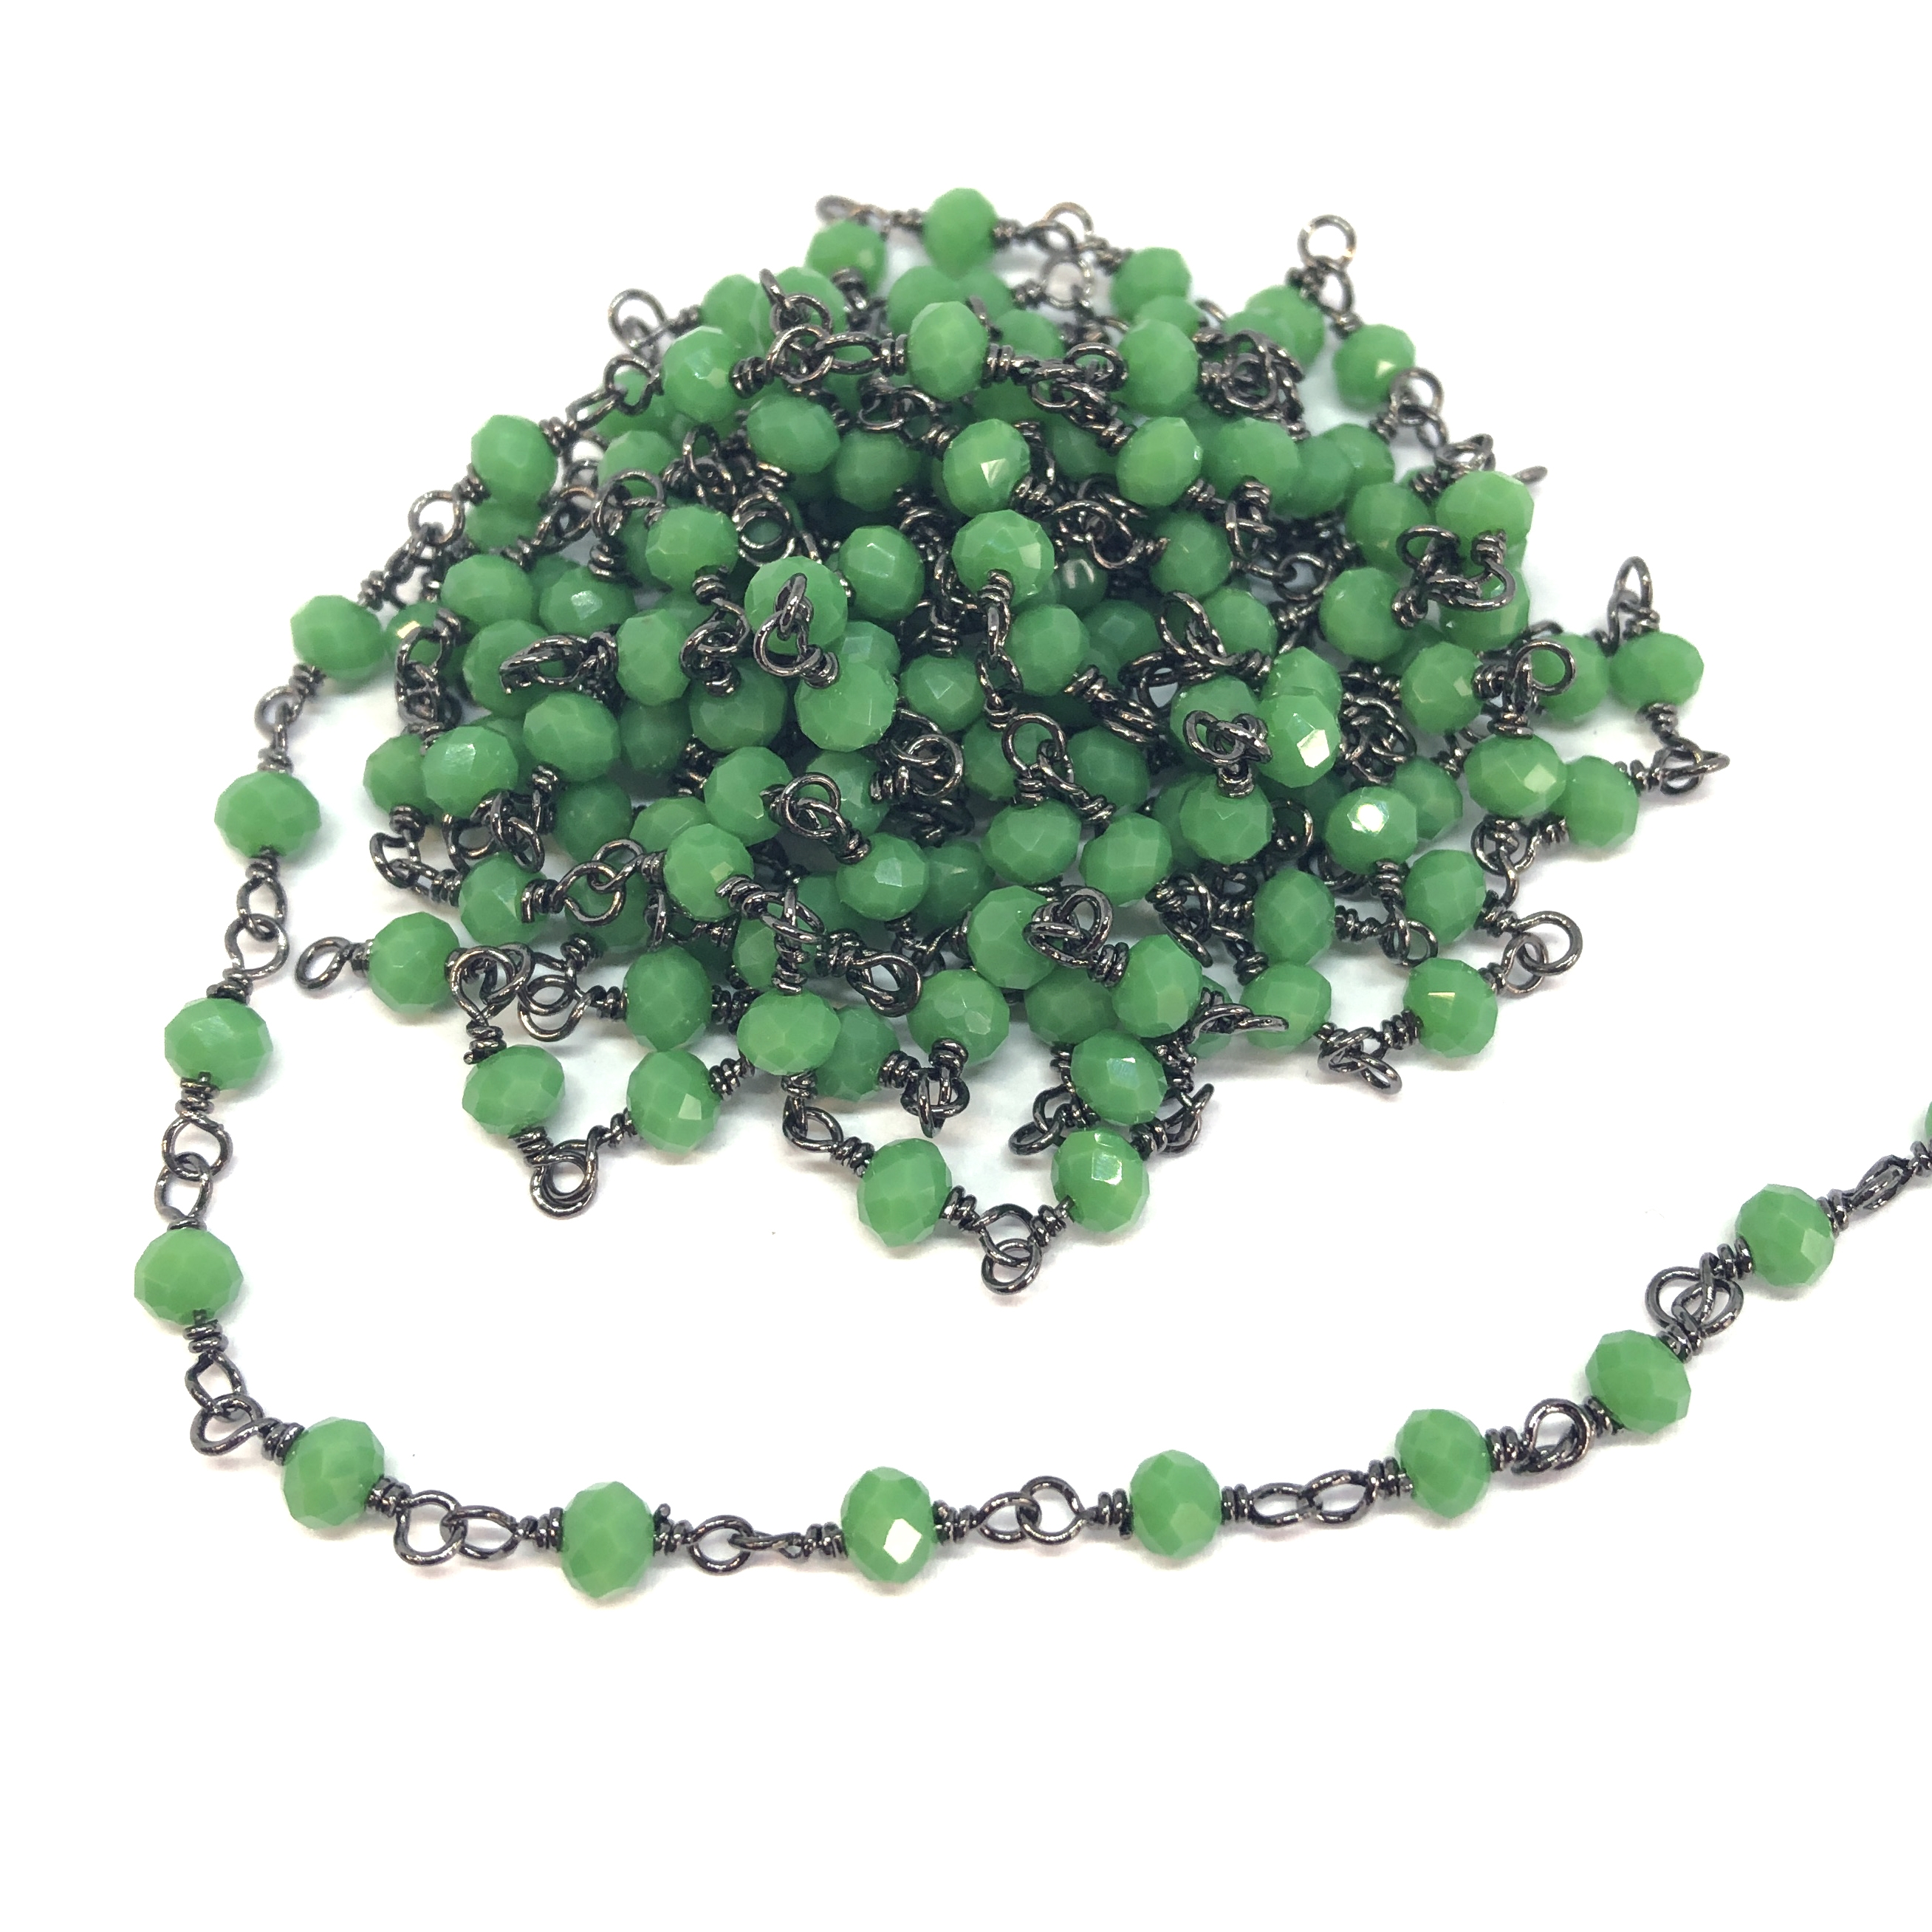 glass bead chain, bead and link chain, wire wrapped chain, Peking green, glass beads, jewelry chain, jewelry making supplies, vintage jewelry supplies, bead chain, handmade chain, glass beads, chain, beaded chain, 08689, rosary chain, grass green beads